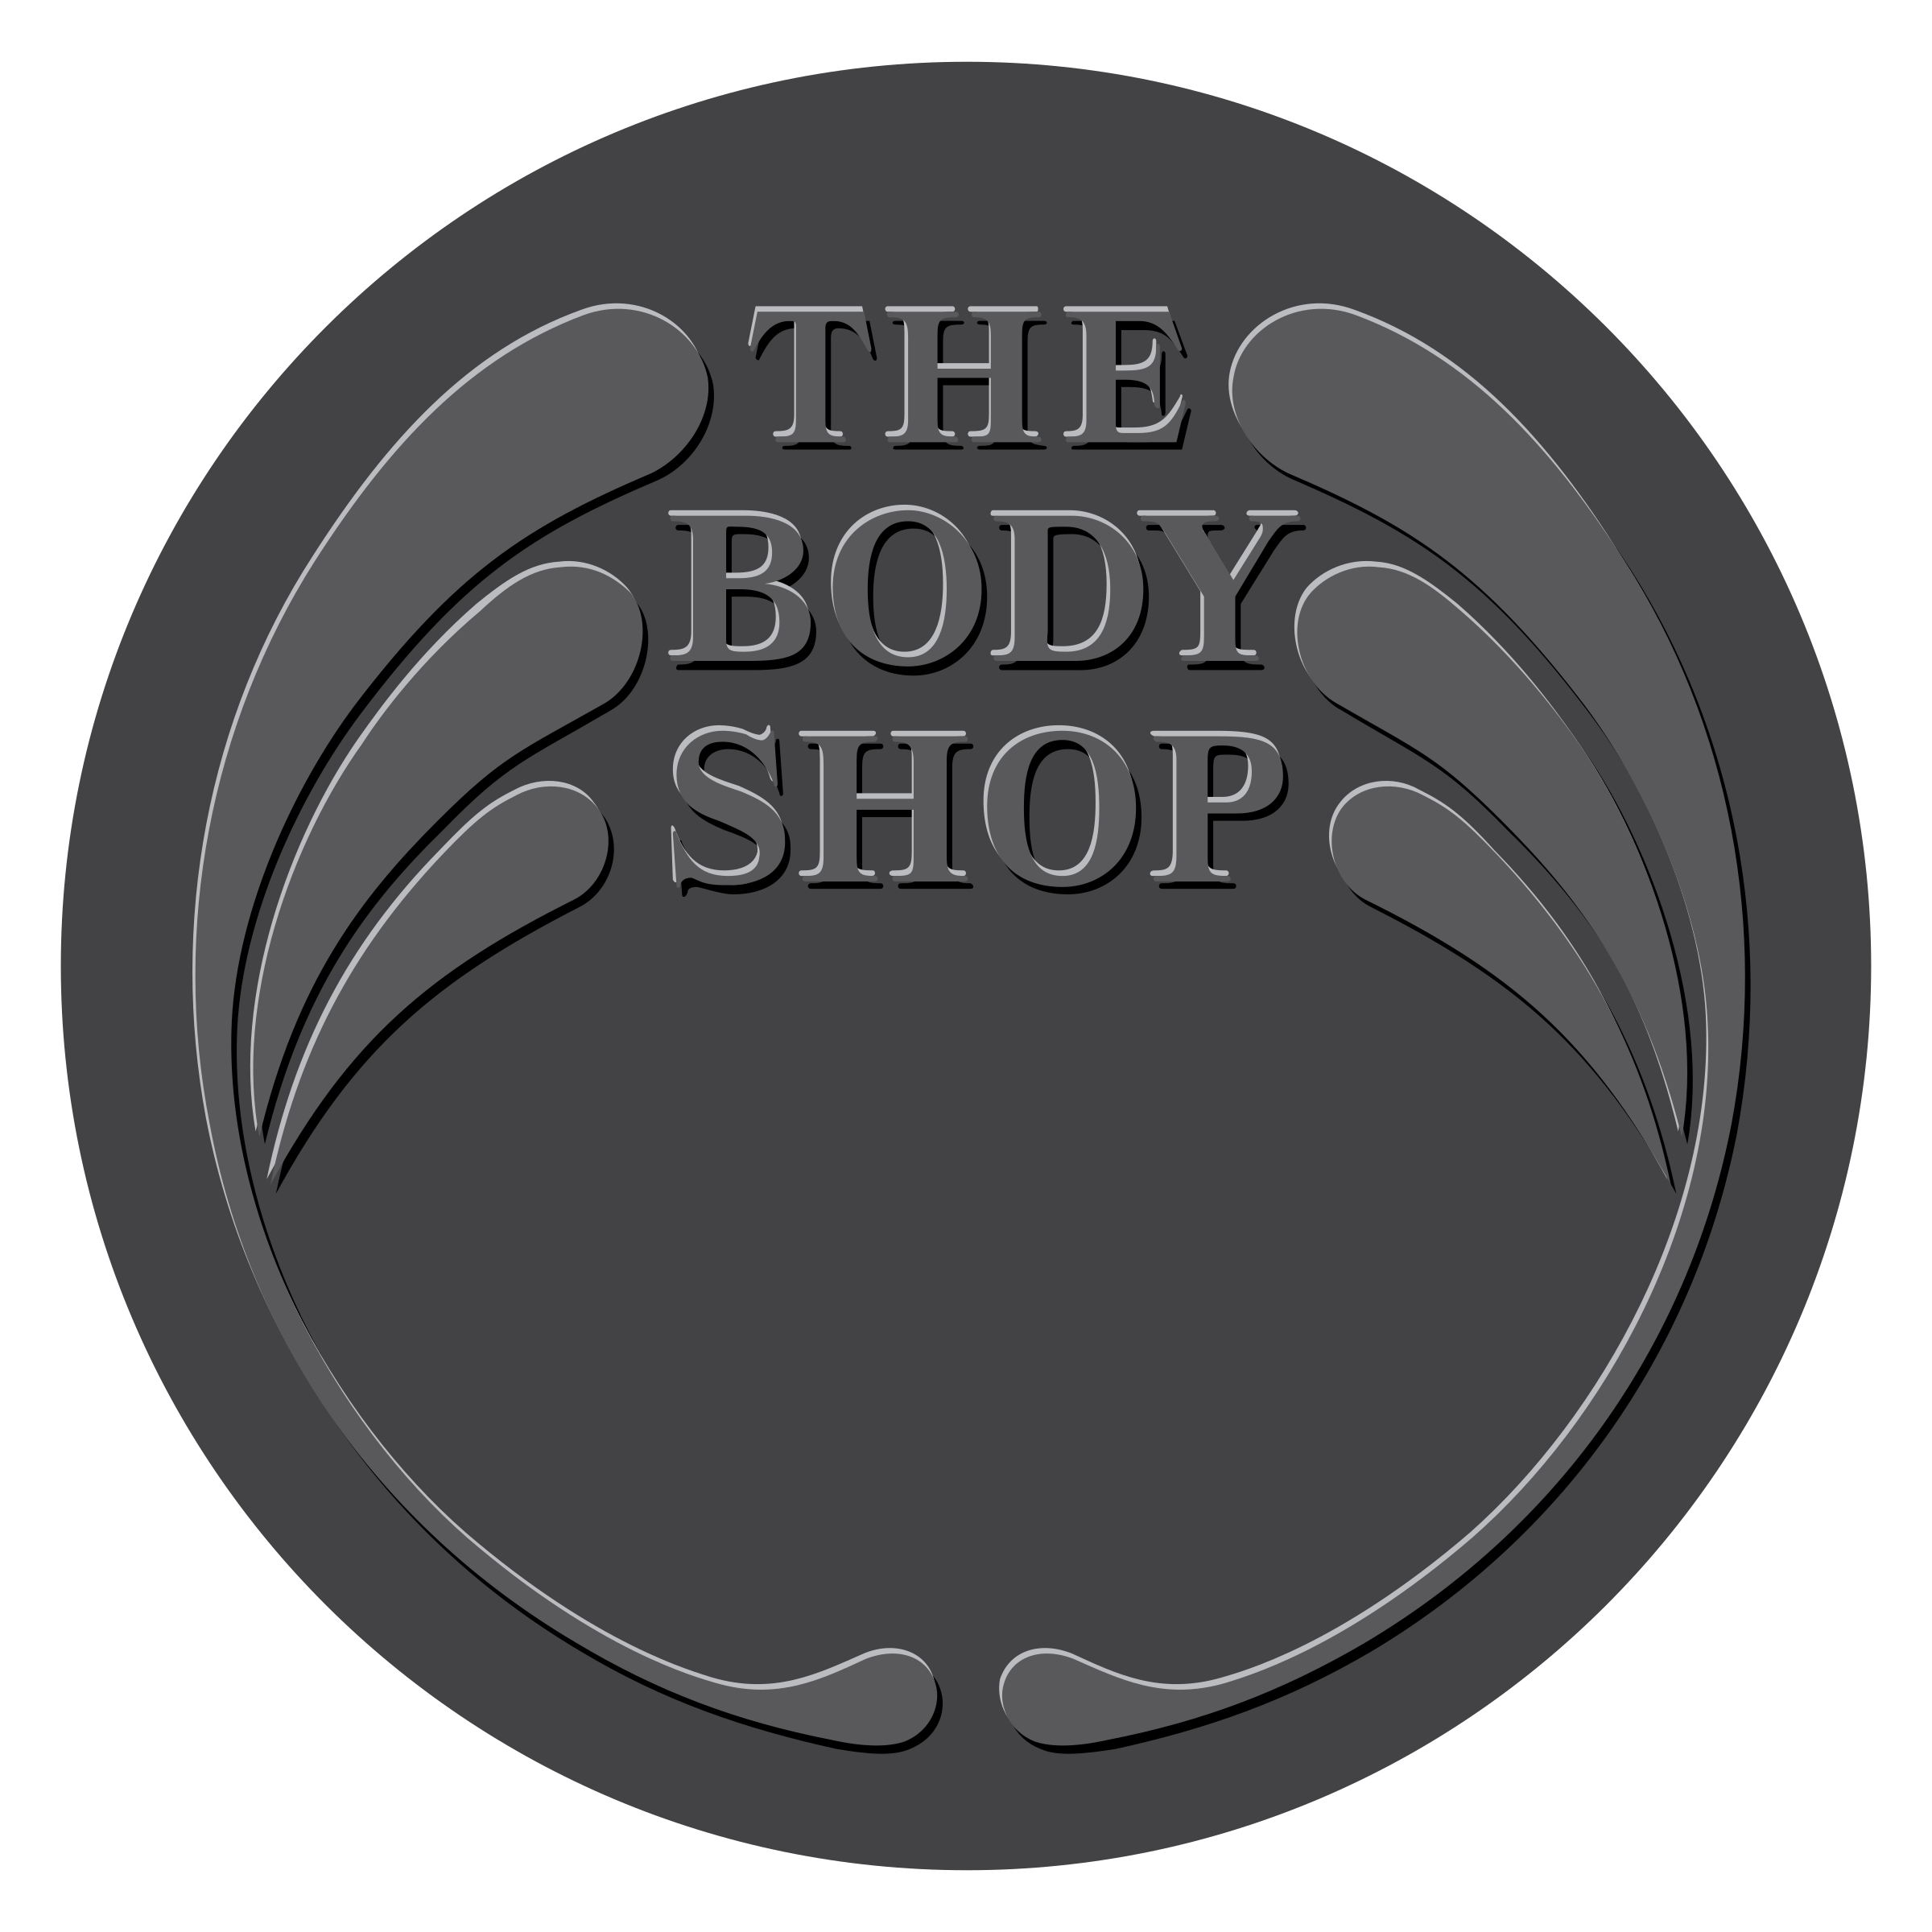 the body shop logo png transparent svg vector freebie supply rh freebiesupply com body shop logo evolution body shop logo